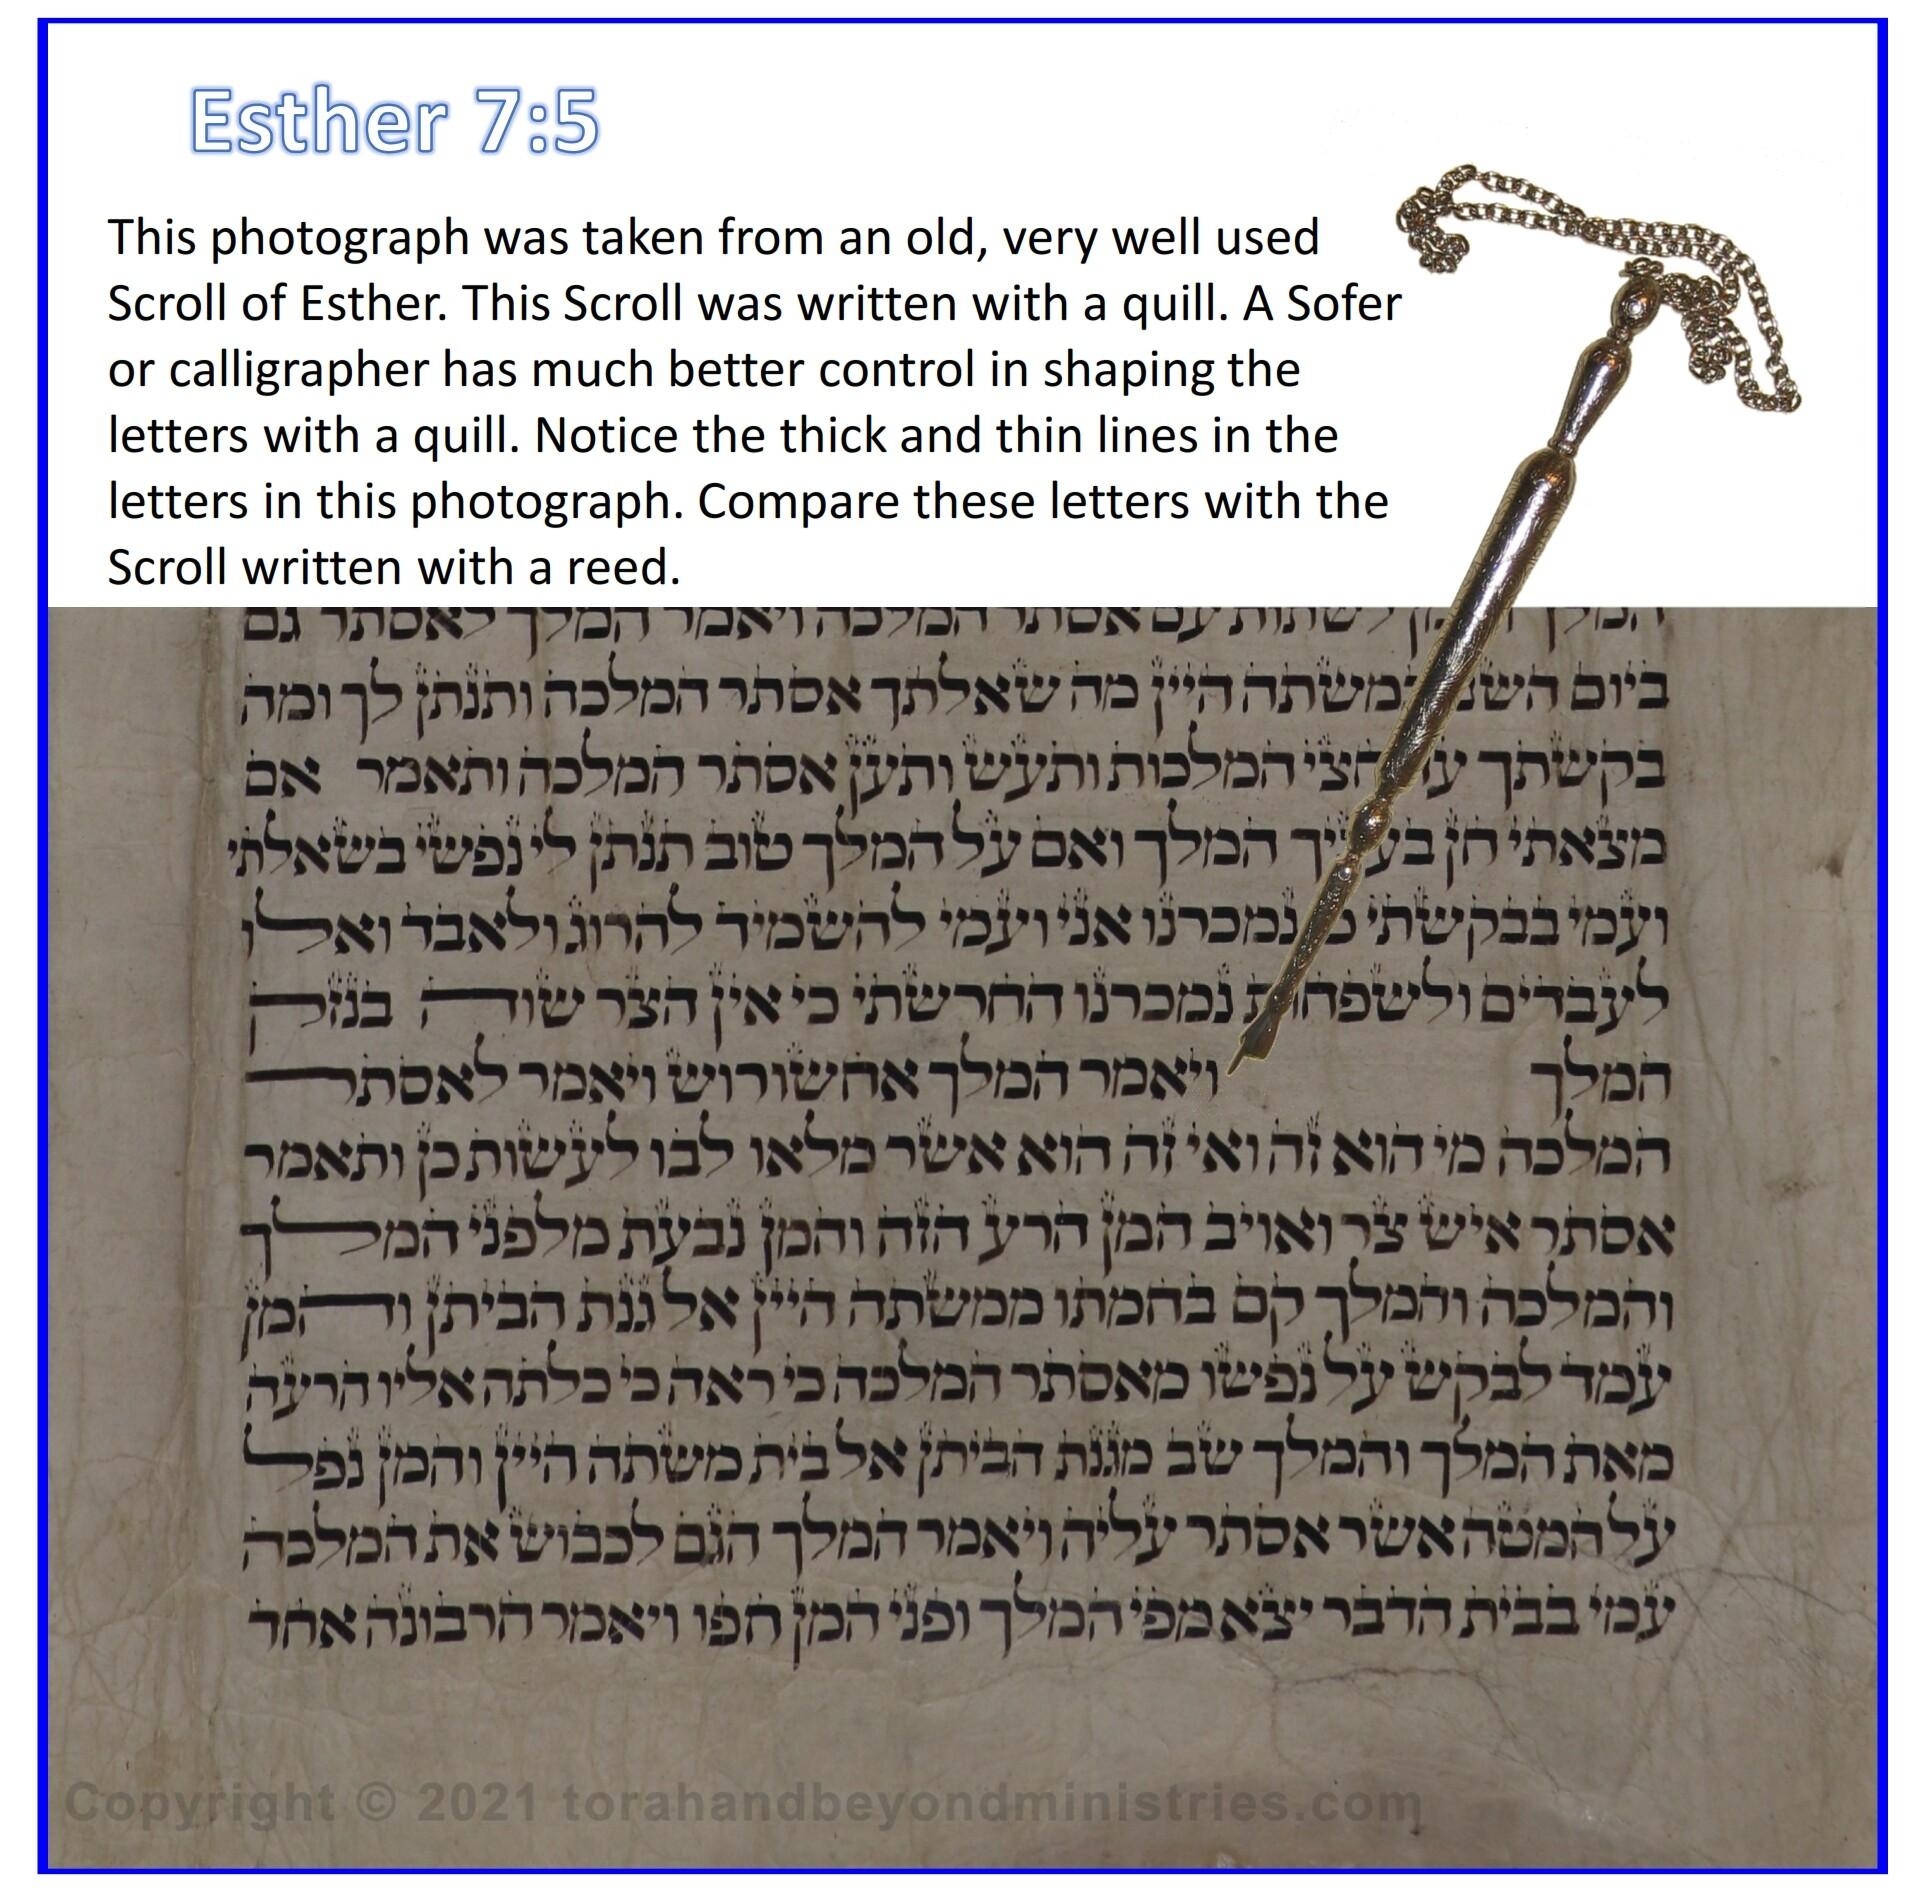 Esther 7:5 shown in an old Hebrew Scroll of Esther